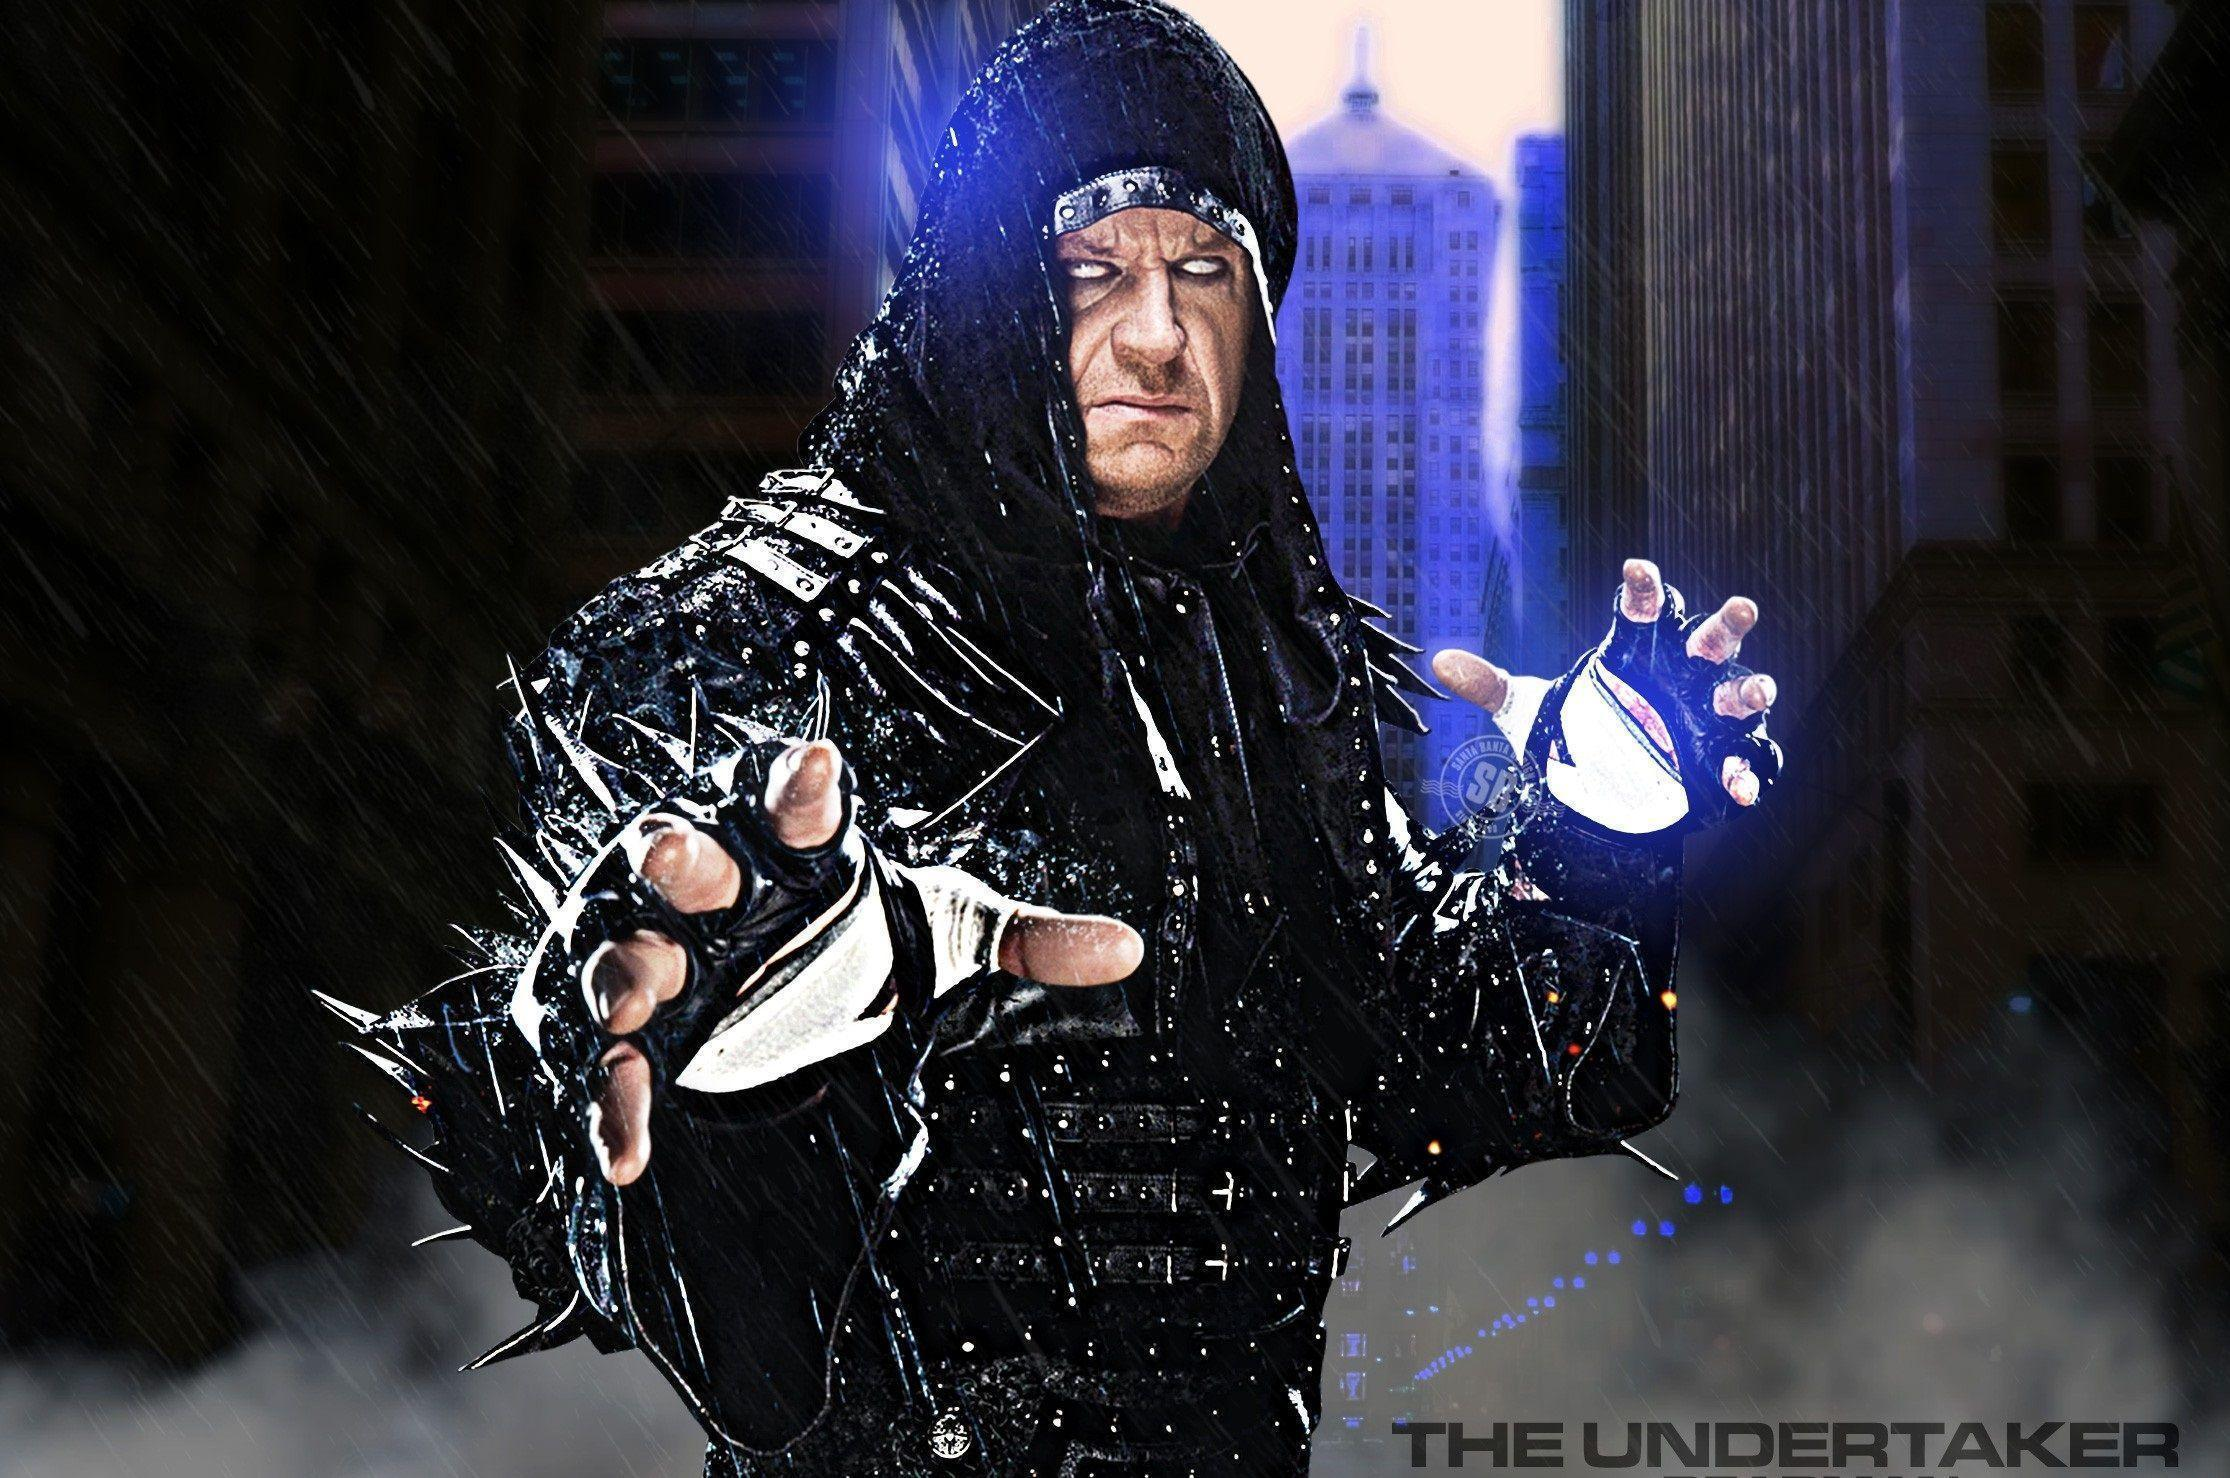 Undertaker wallpaper hd